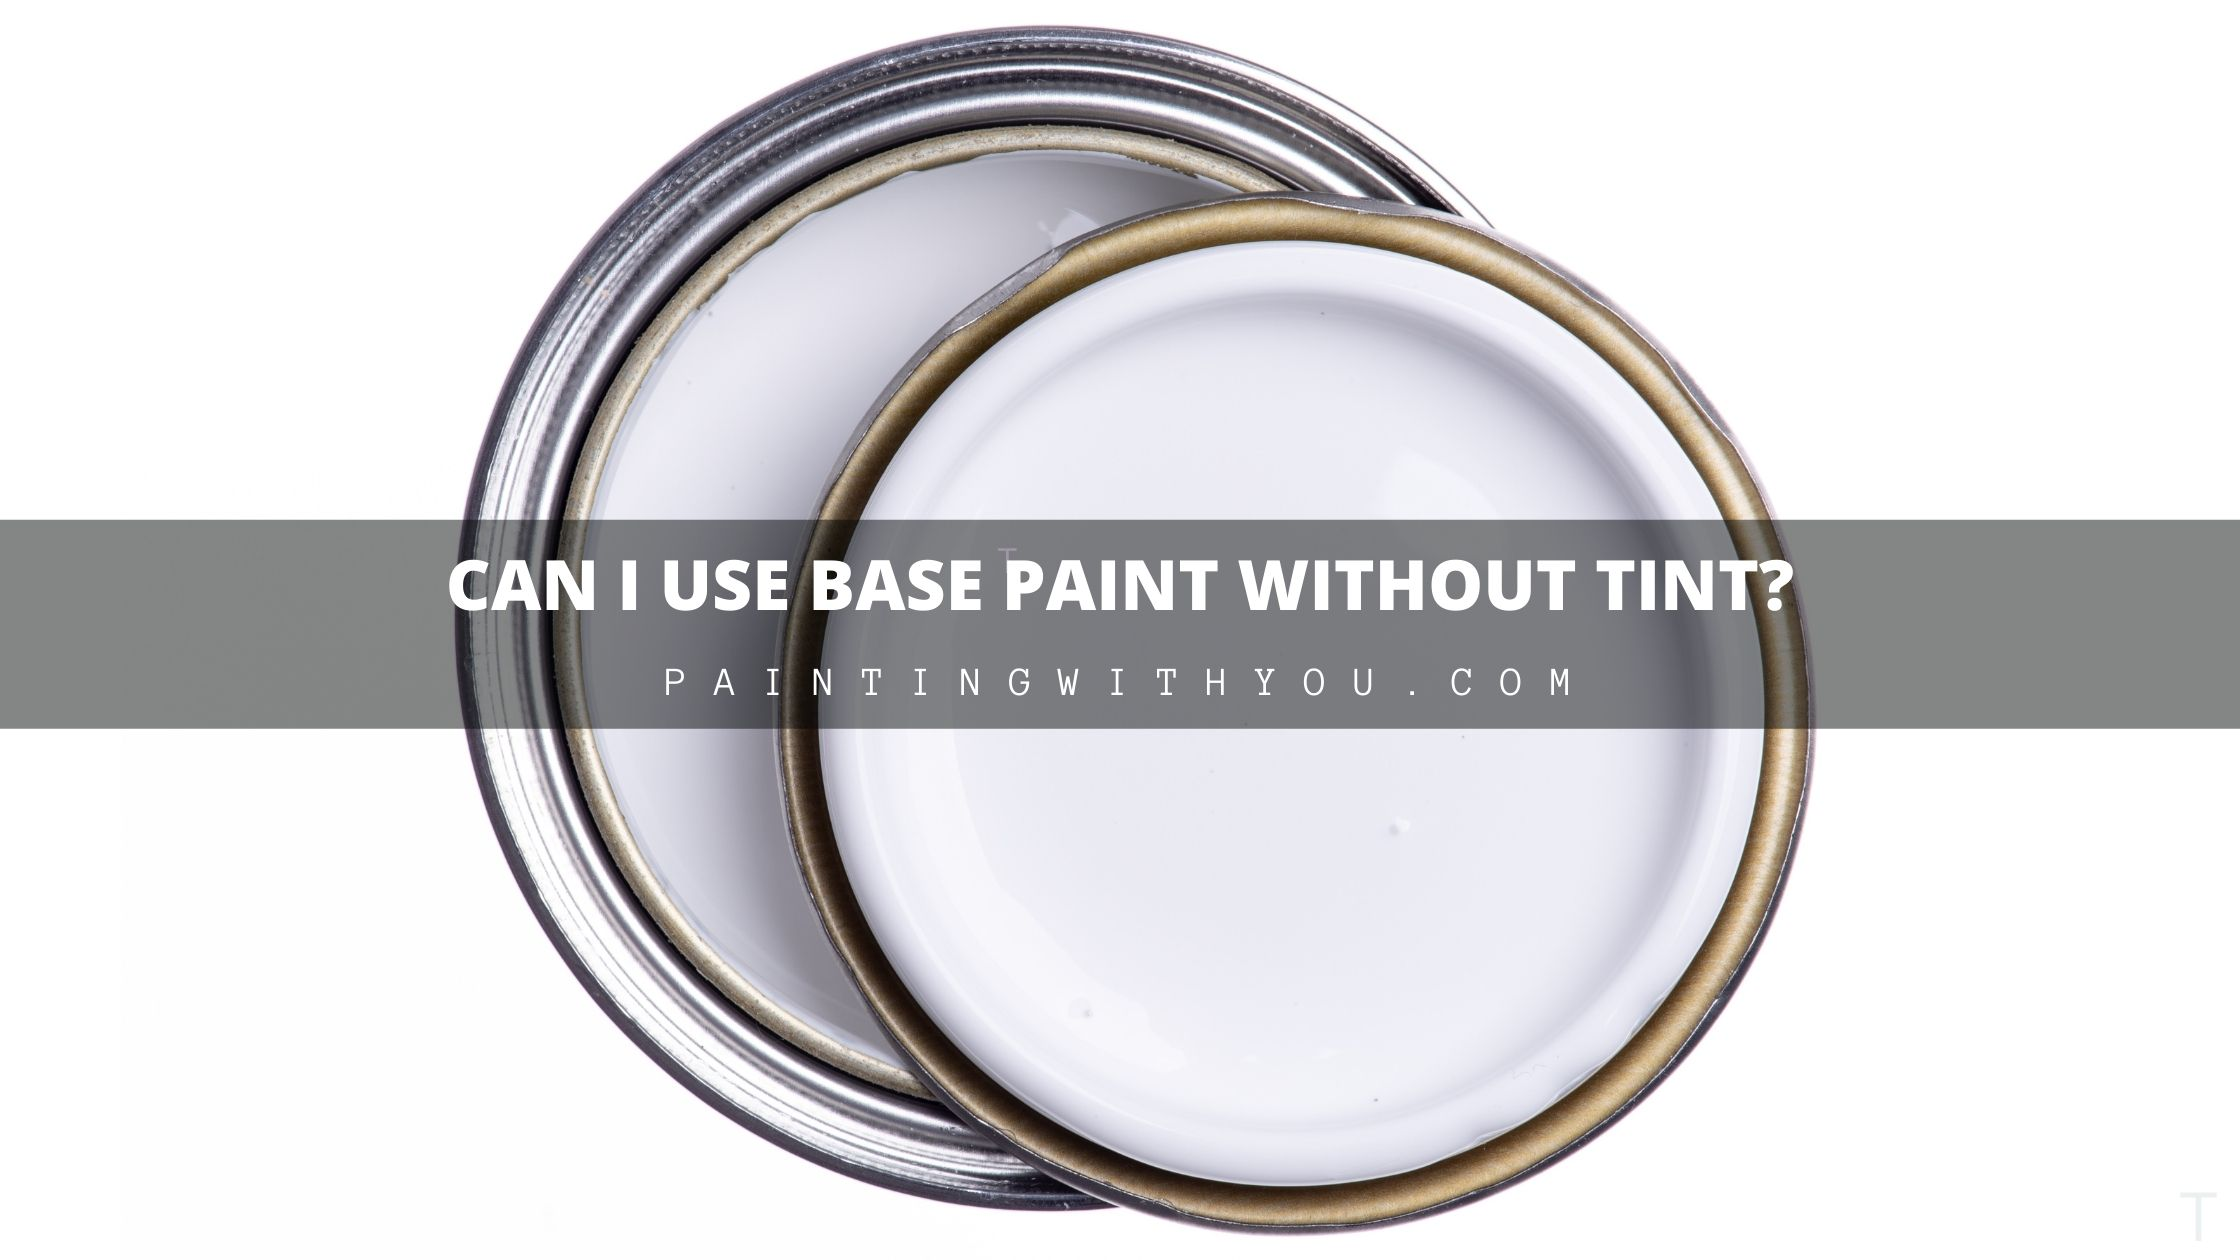 There are many overwhelming questions someone new to painting may have such as using base paint without tint.